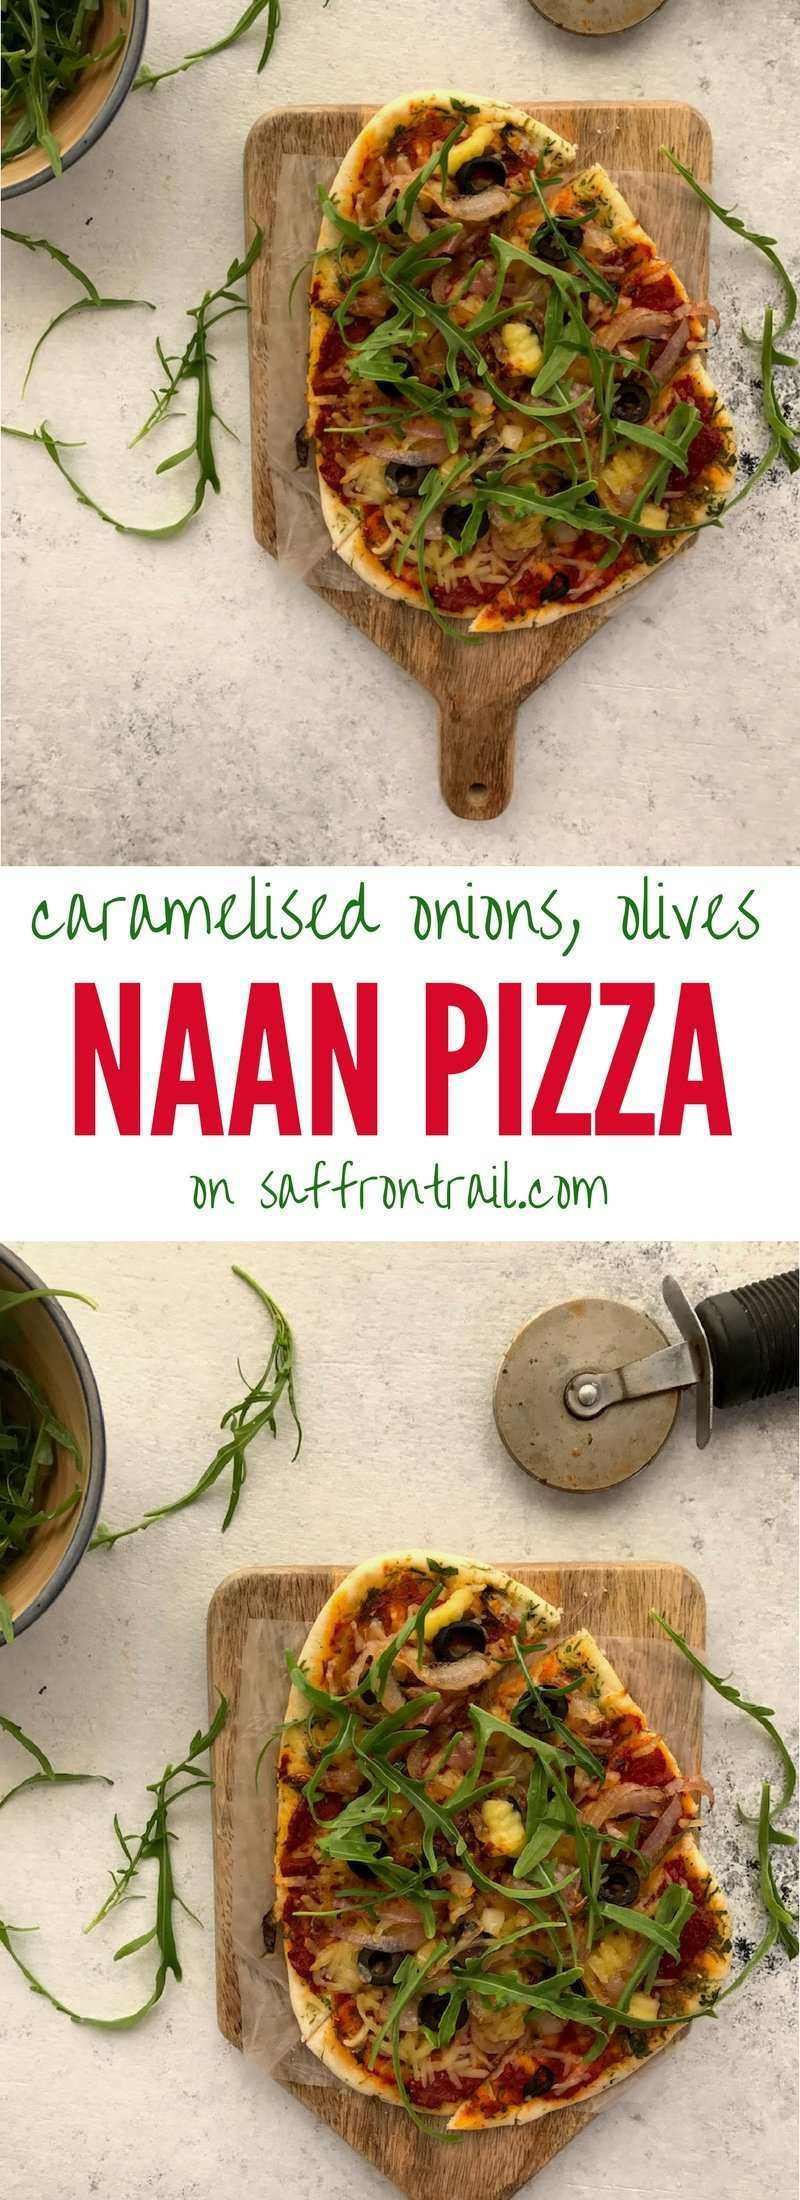 Recipe for an easy Naan Pizza that you can prepare as an after school snack for kids or even a quick weeknight dinner + a recipe for instant pizza sauce!